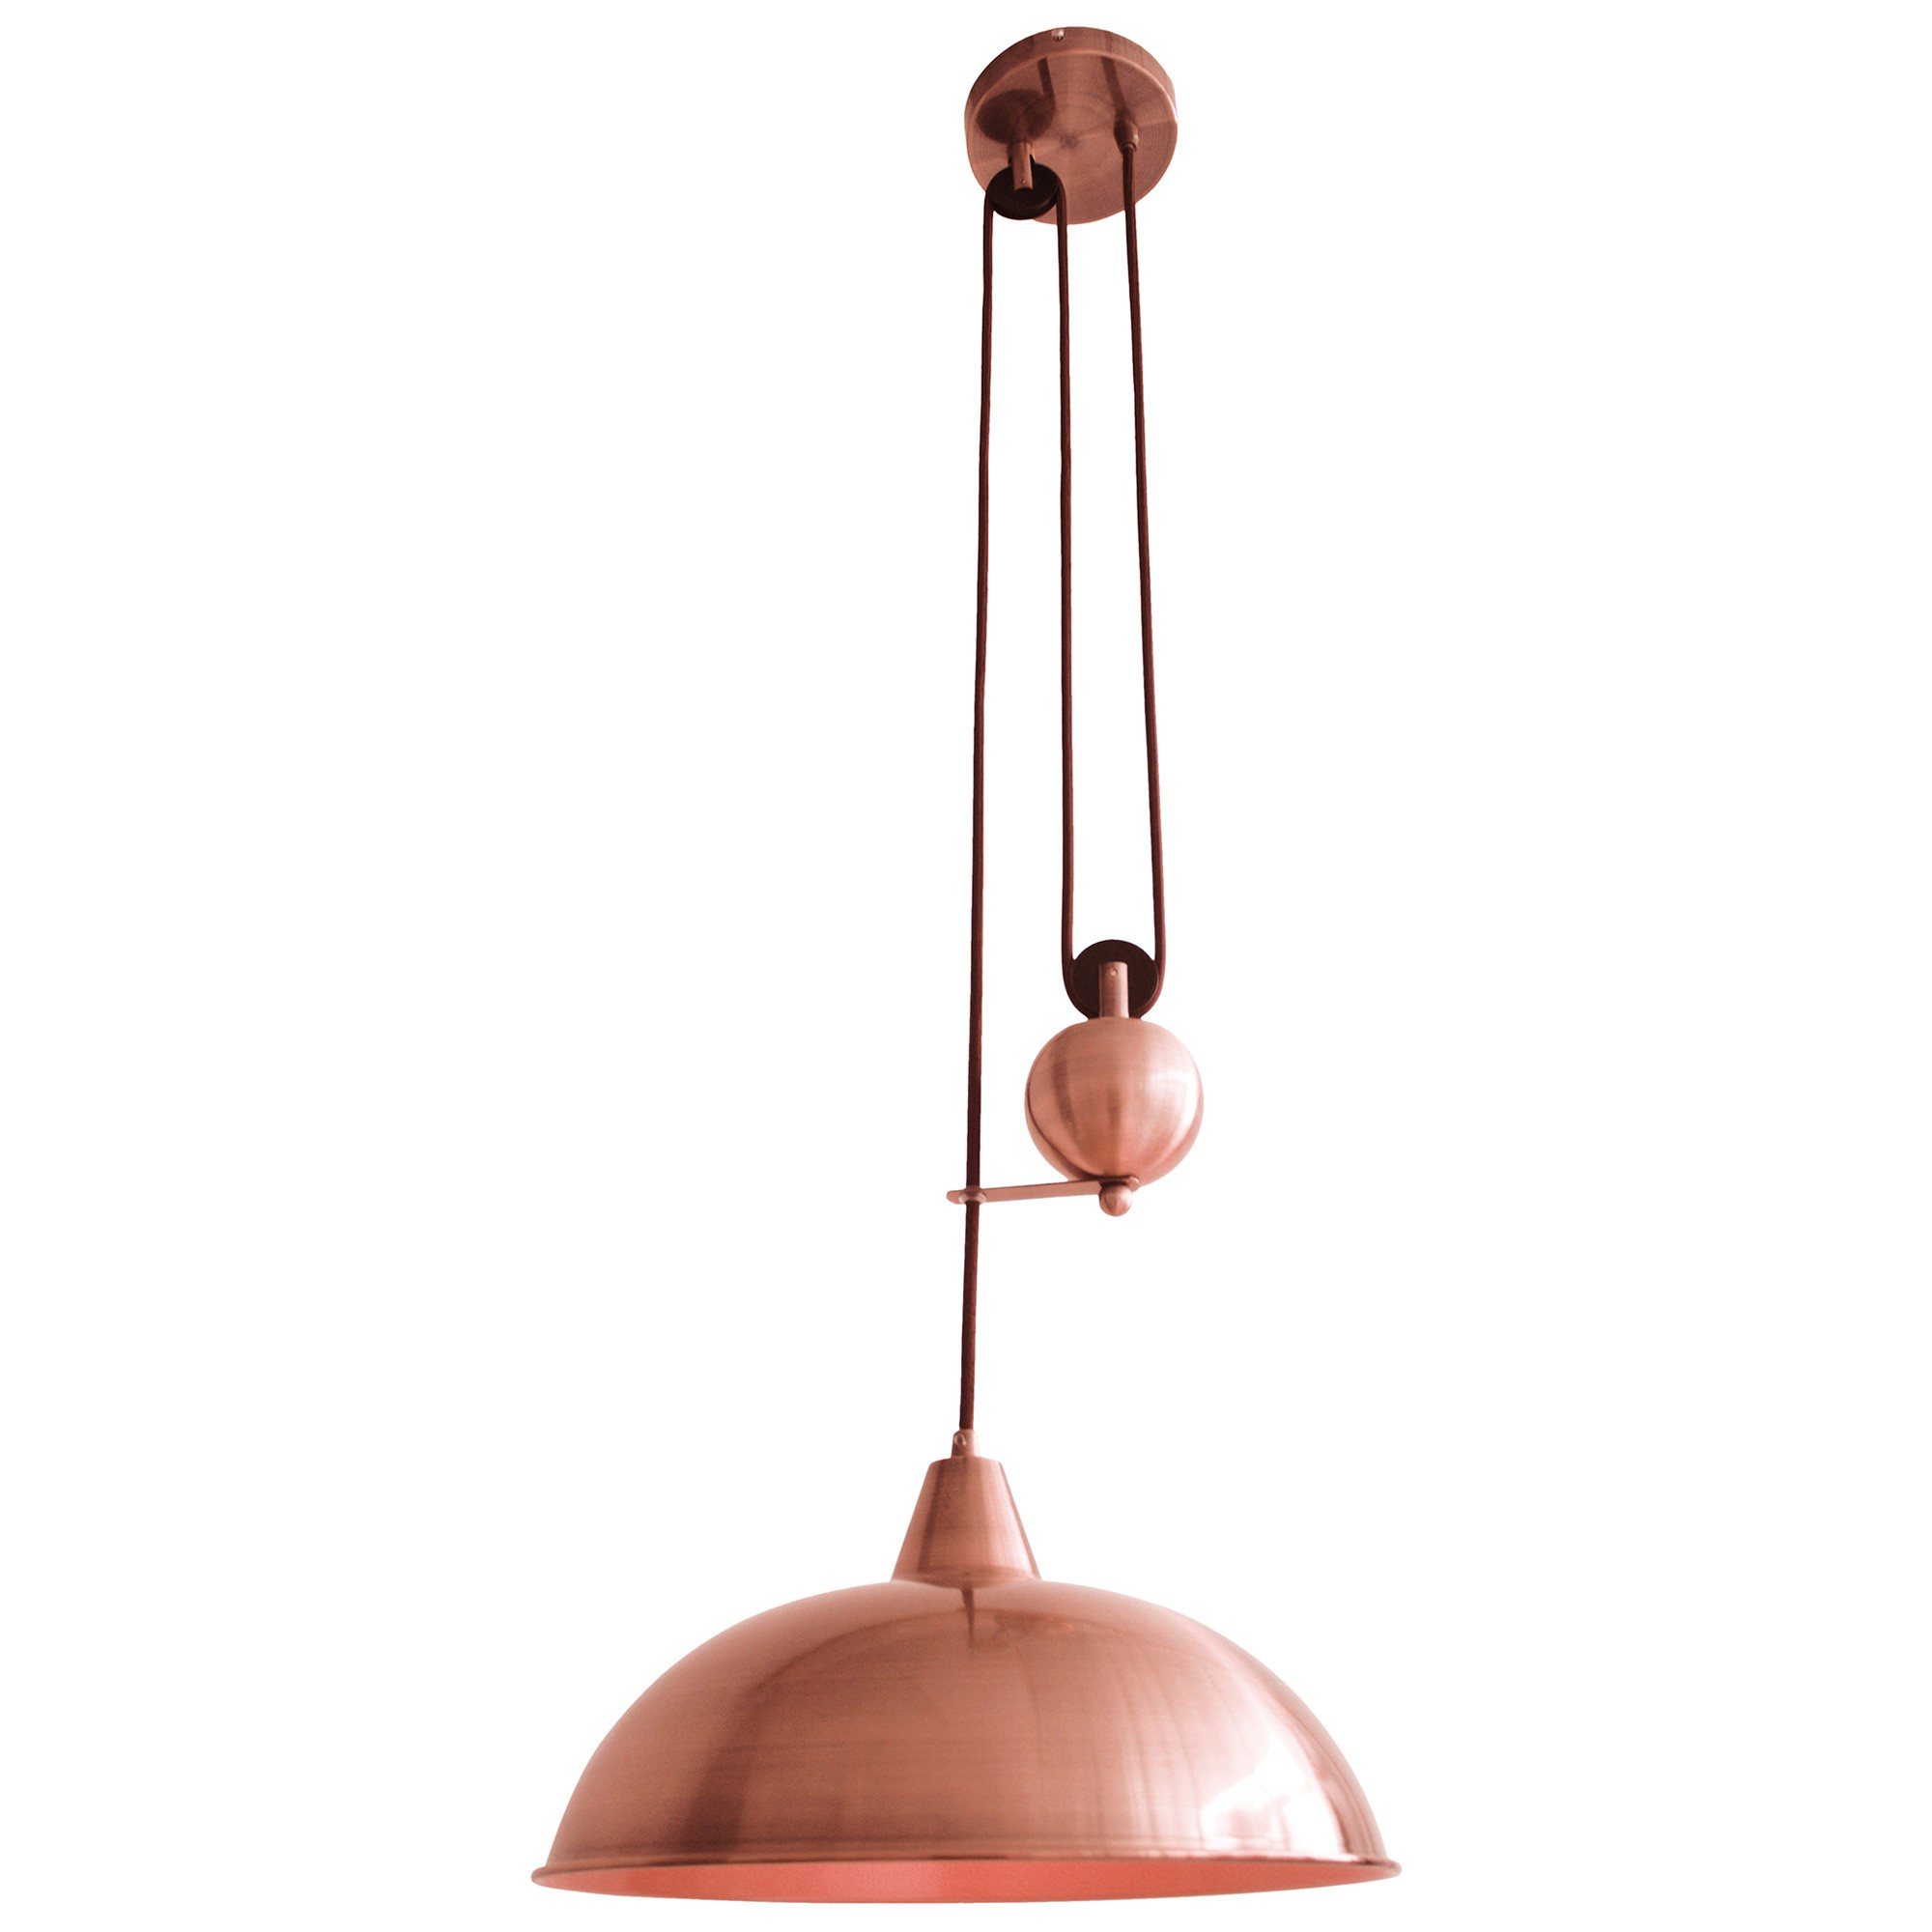 Jess Rise & Fall Stainless Steel Pendant Pulley Light, Antique Brass-I